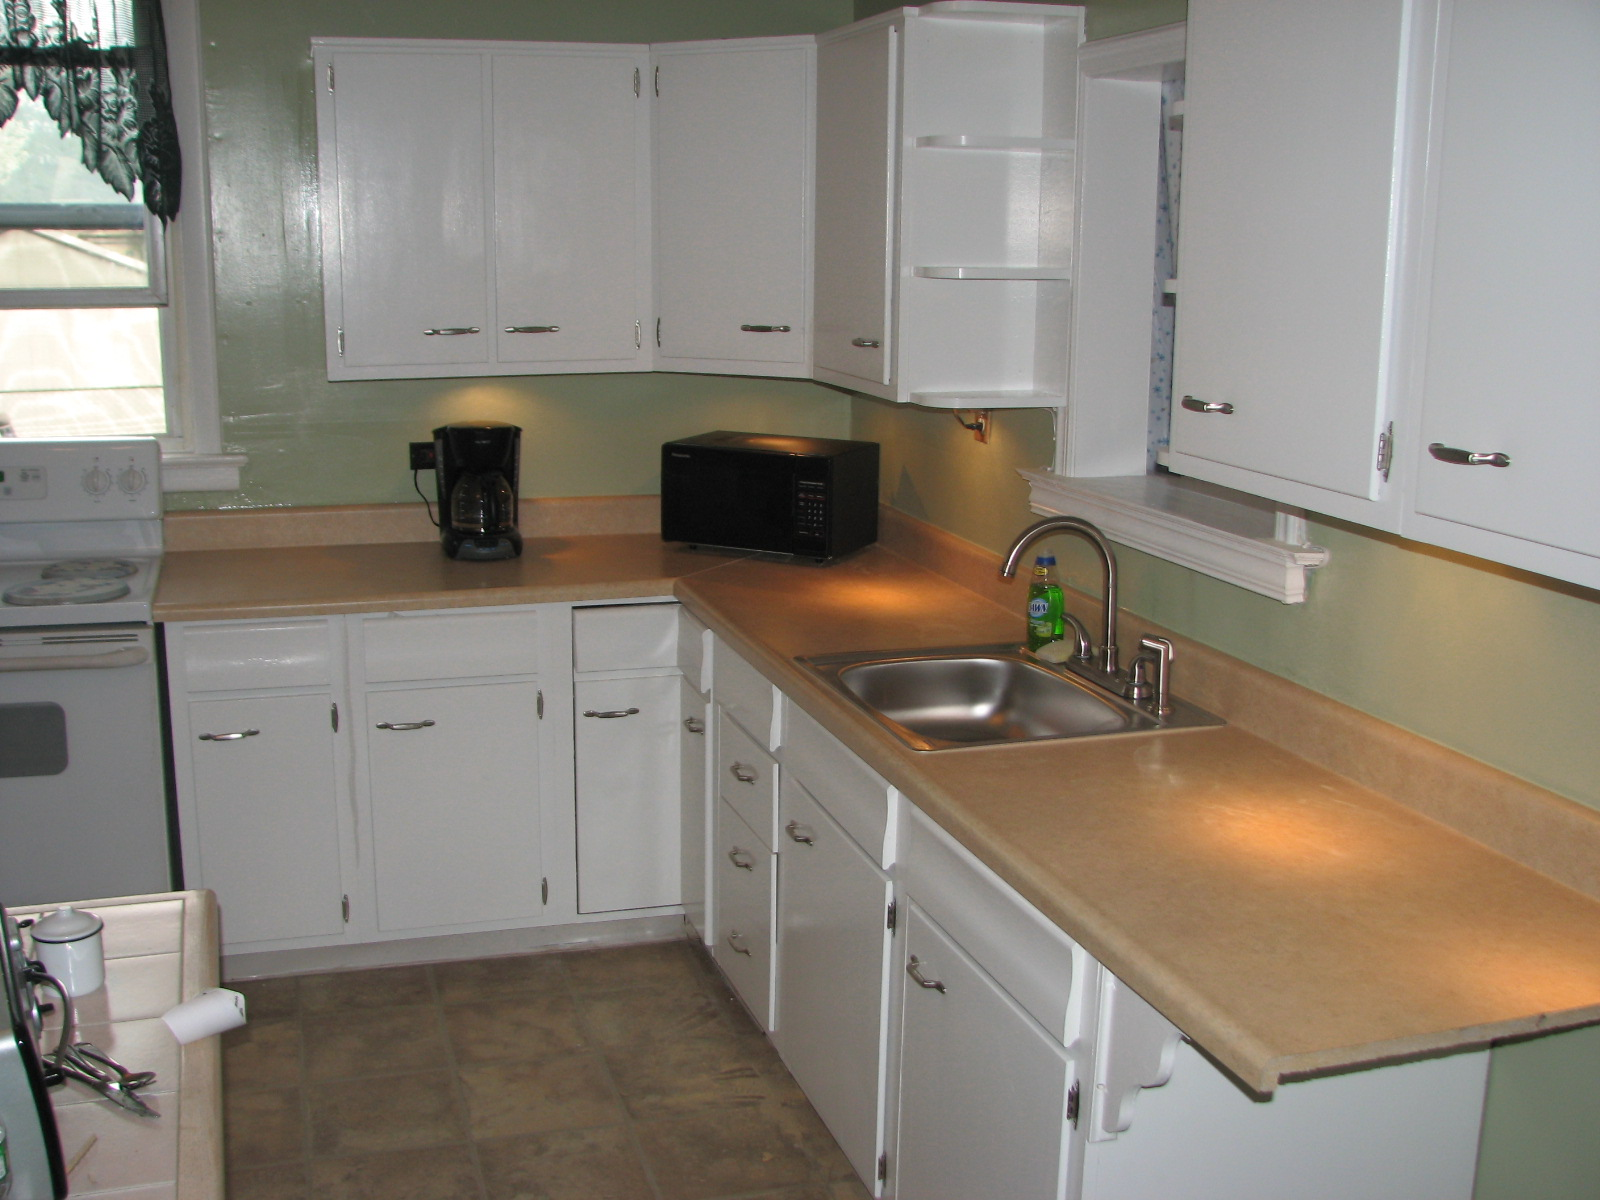 Small Kitchen Remodel Before and After | 1600 x 1200 · 389 kB · jpeg | 1600 x 1200 · 389 kB · jpeg